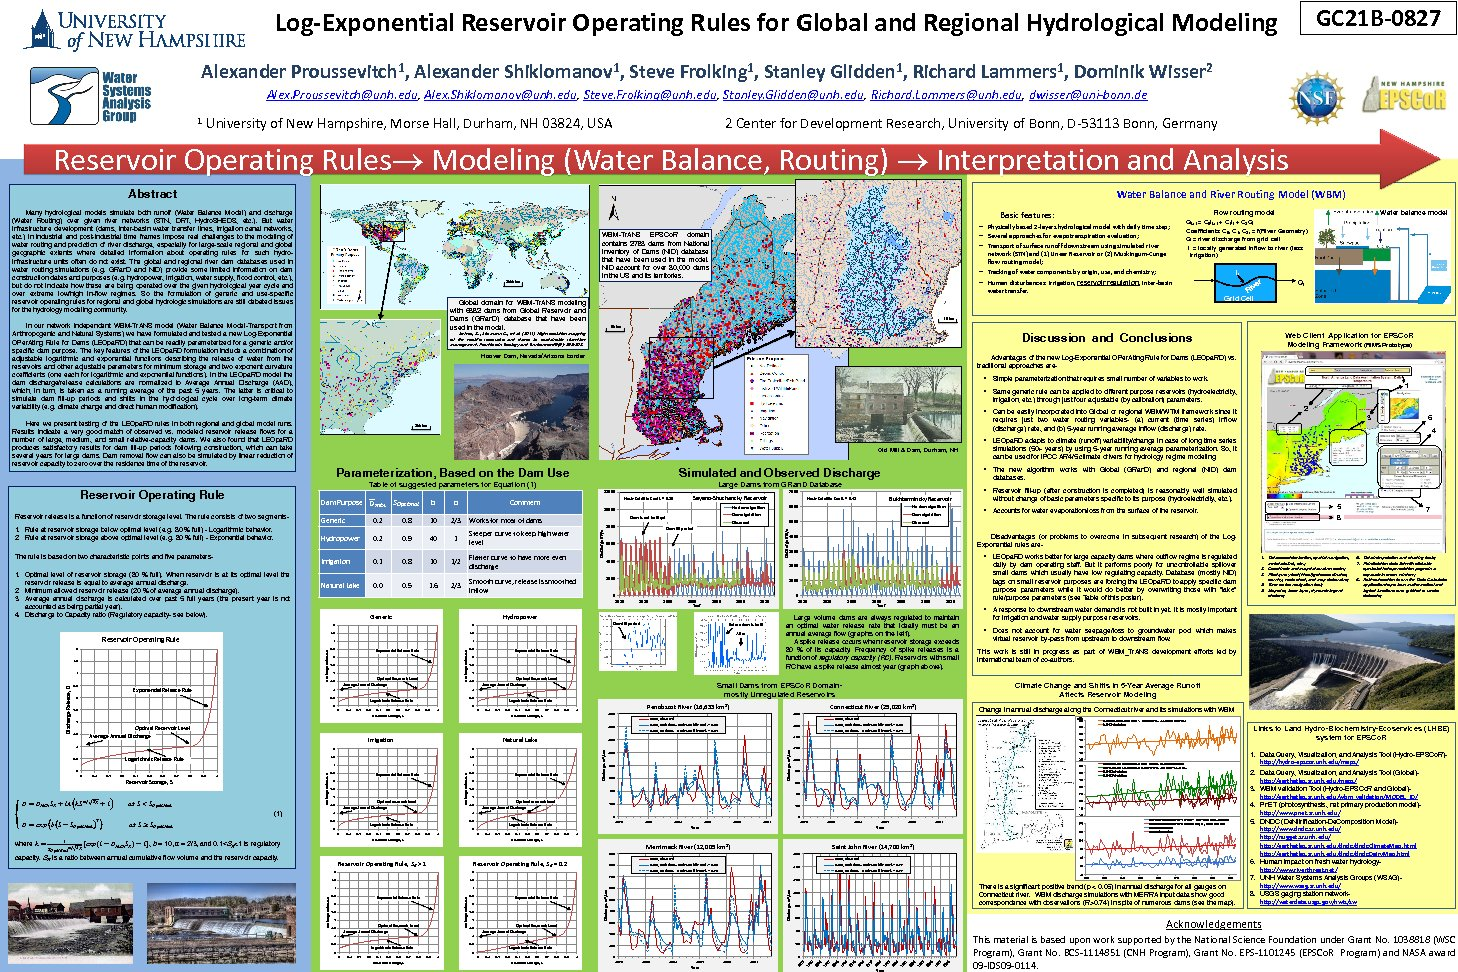 Log-Exponential Reservoir Operating Rules For Global And Regional Hydrological Modeling by alexp